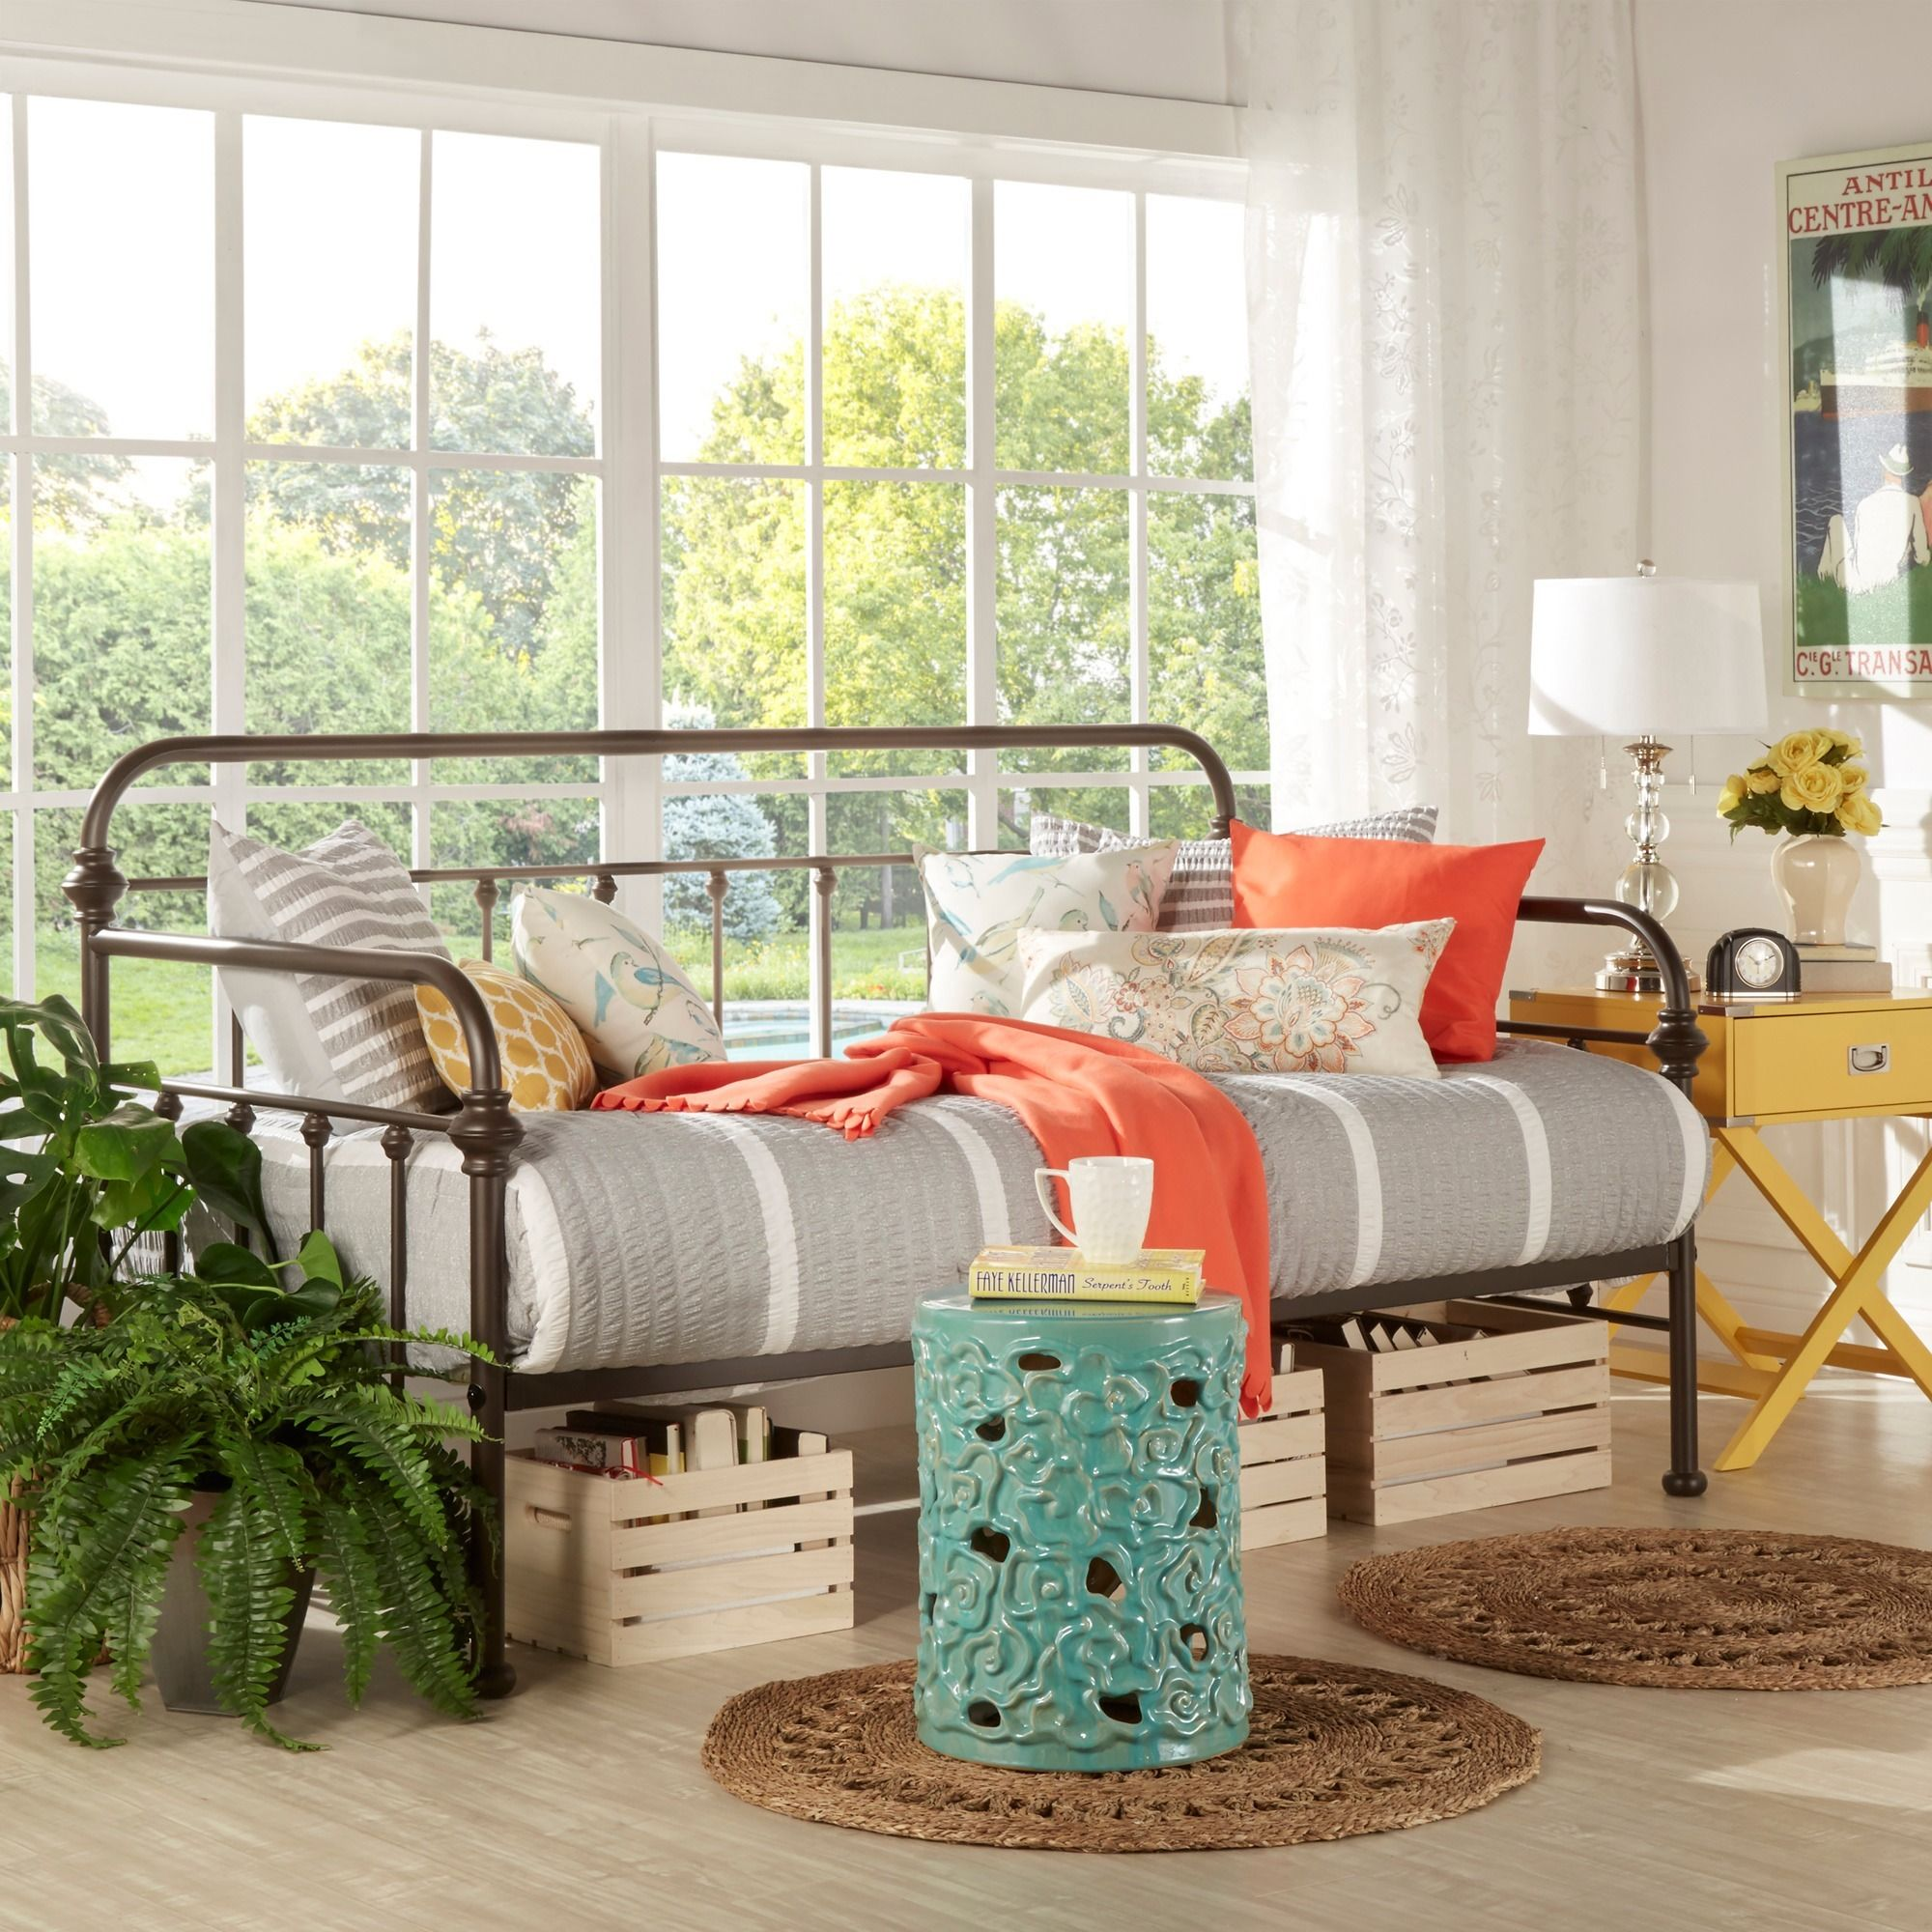 Giselle Antique Graceful Lines Iron Metal Daybed by iNSPIRE Q Classic.  White DaybedBedroom ...